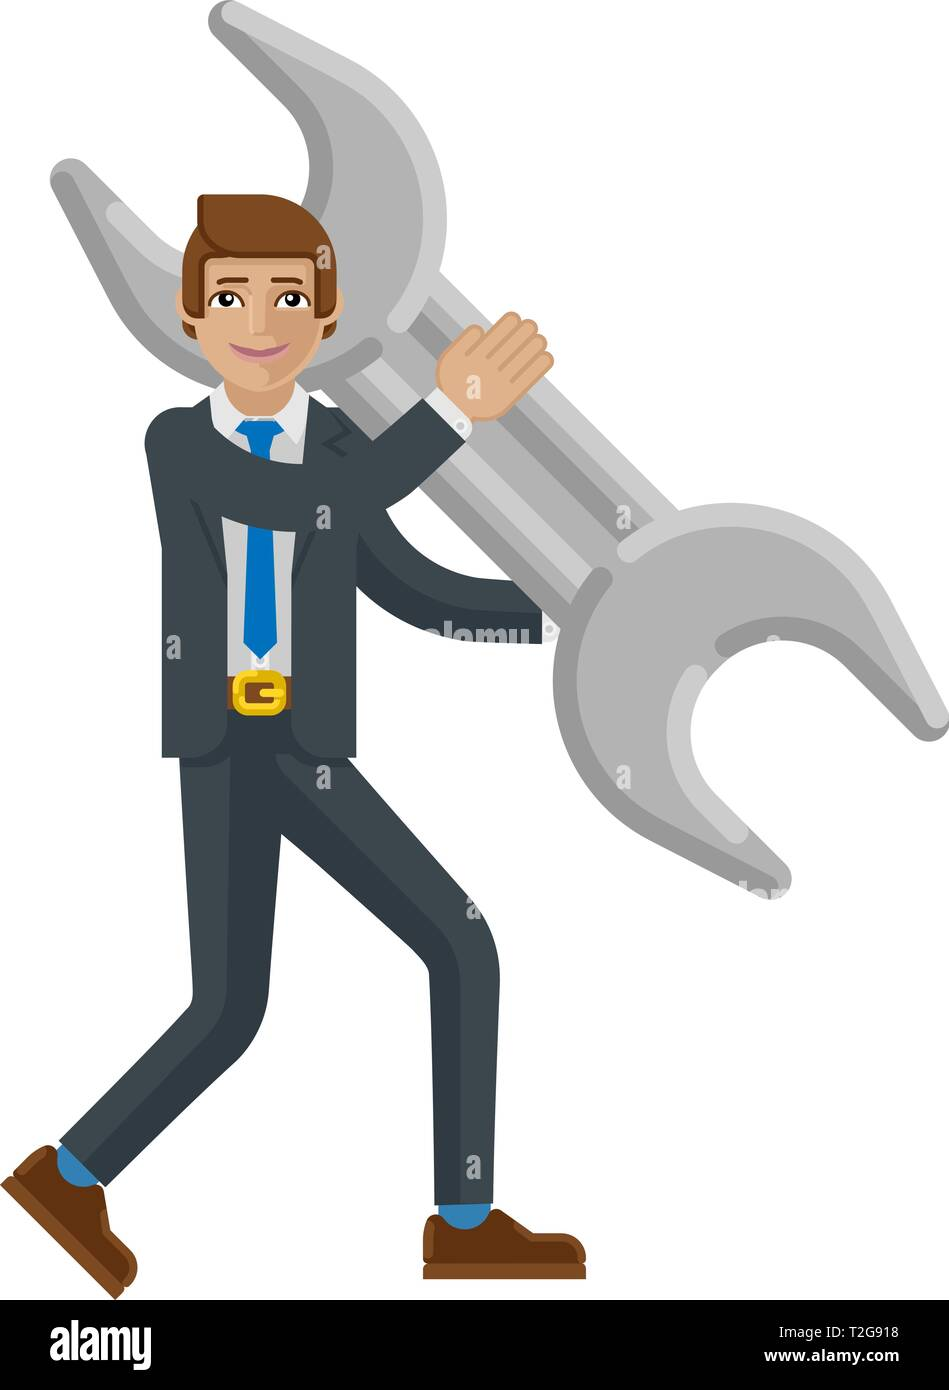 A businessman cartoon character mascot man holding a big spanner wrench business concept - Stock Image